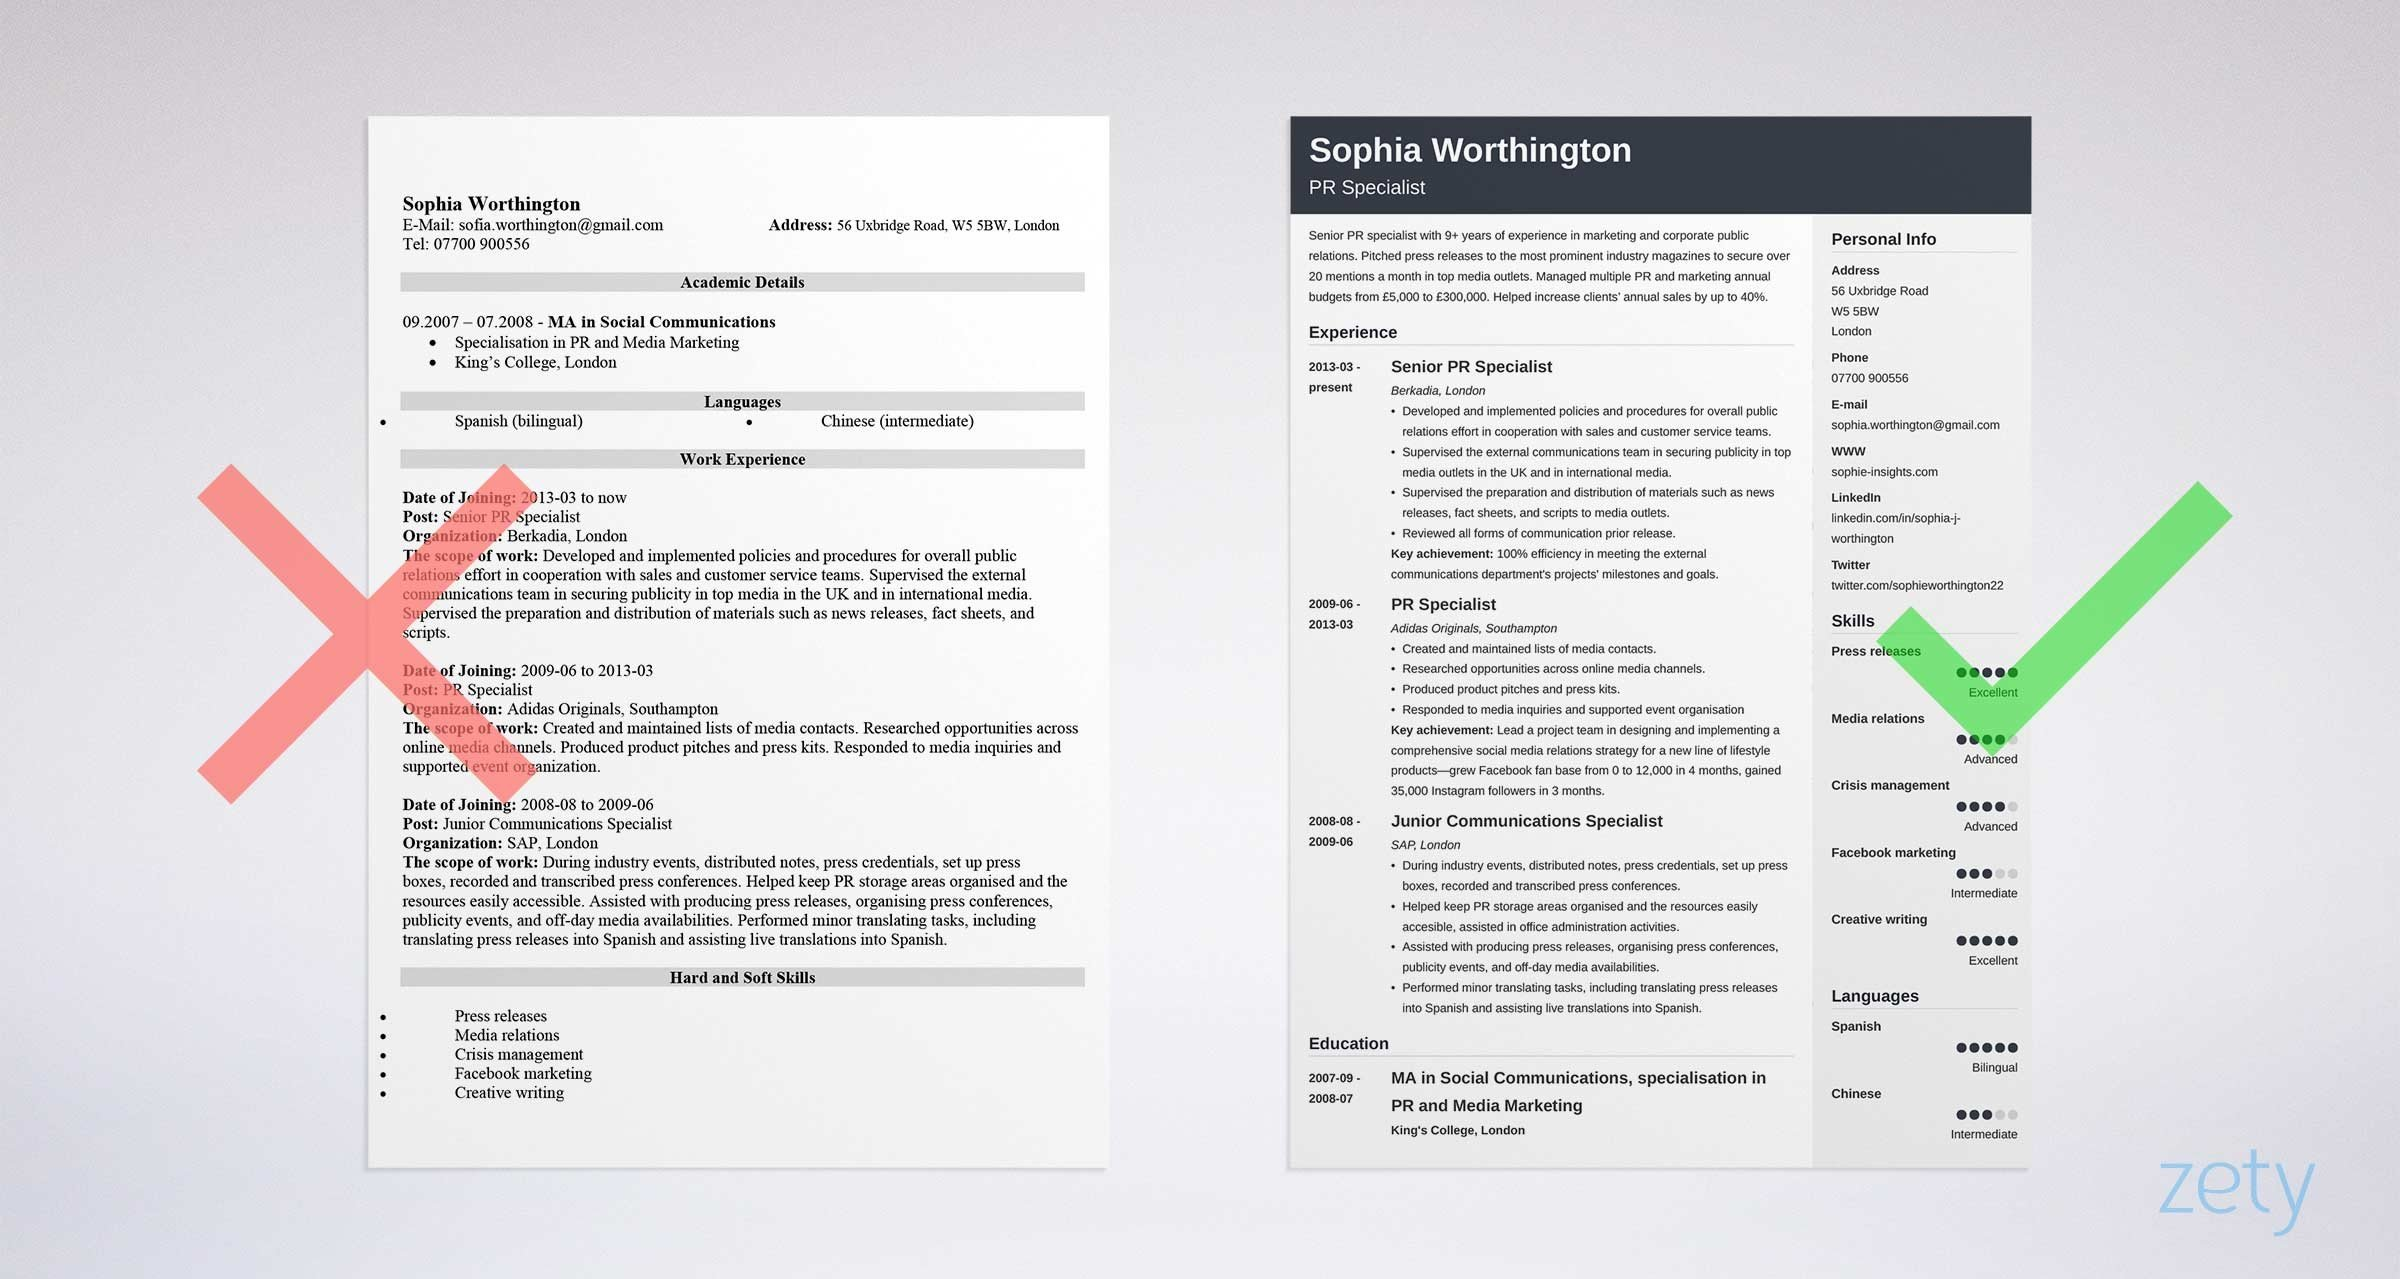 How To Write A Curriculum Vitae Cv For A Job Application